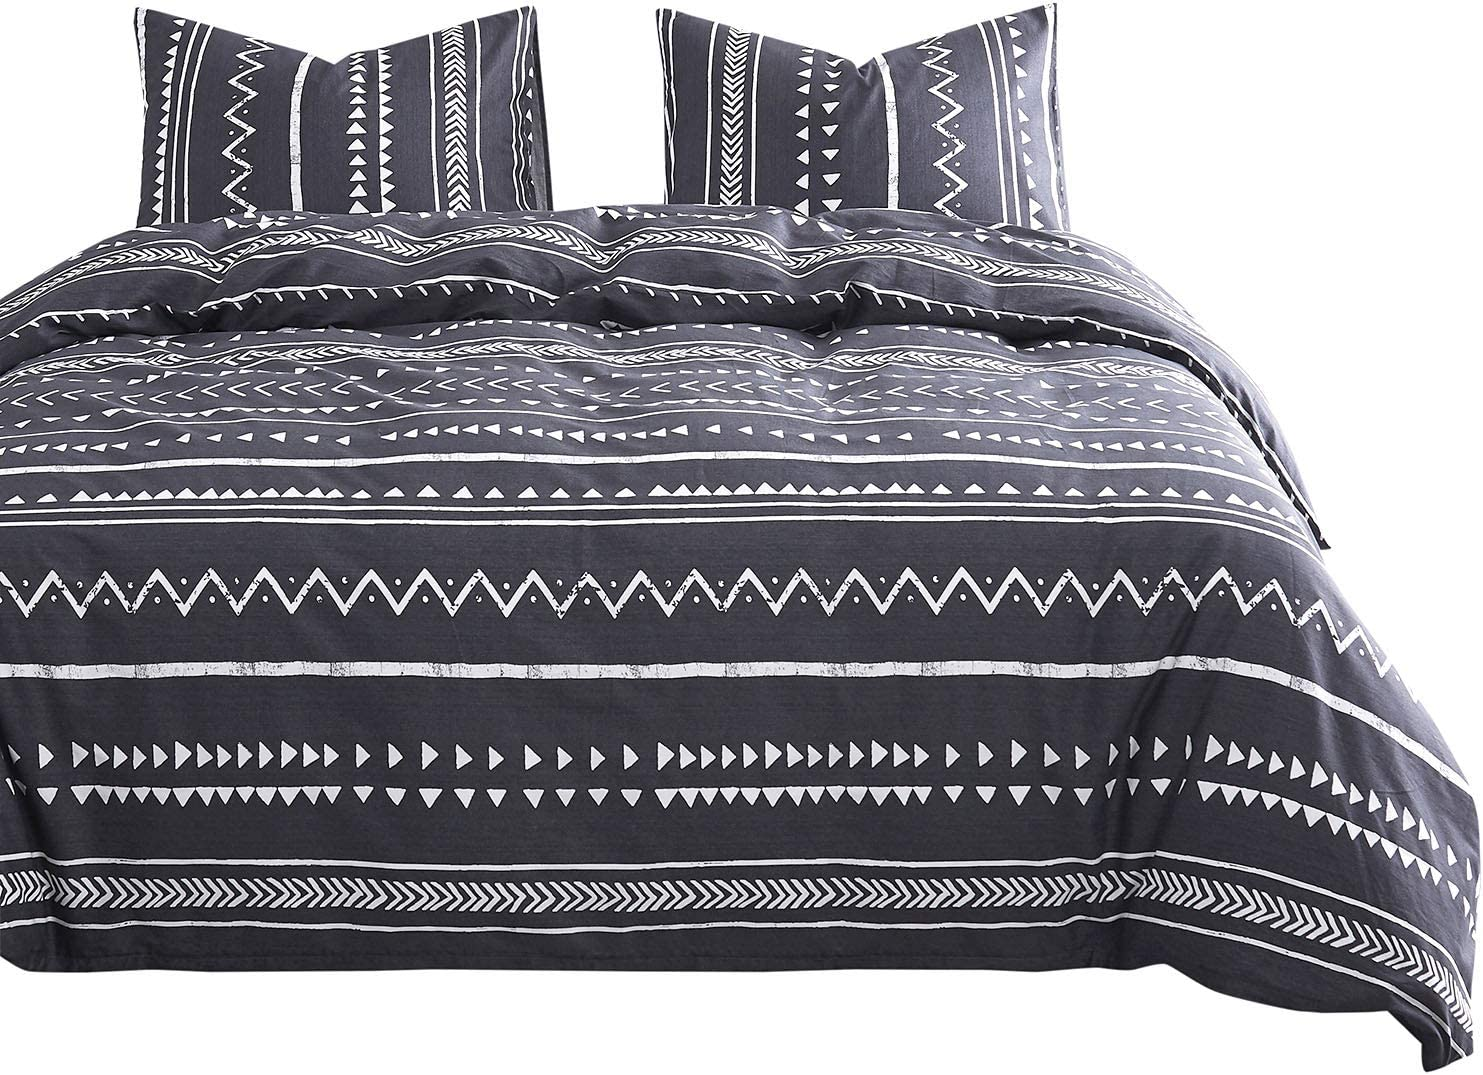 Wake In Cloud - Aztec Comforter Set, 100% Cotton Fabric with Soft Microfiber Fill Bedding, Dark Gray Grey with White Geometric Modern Pattern Printed (3pcs, King Size)